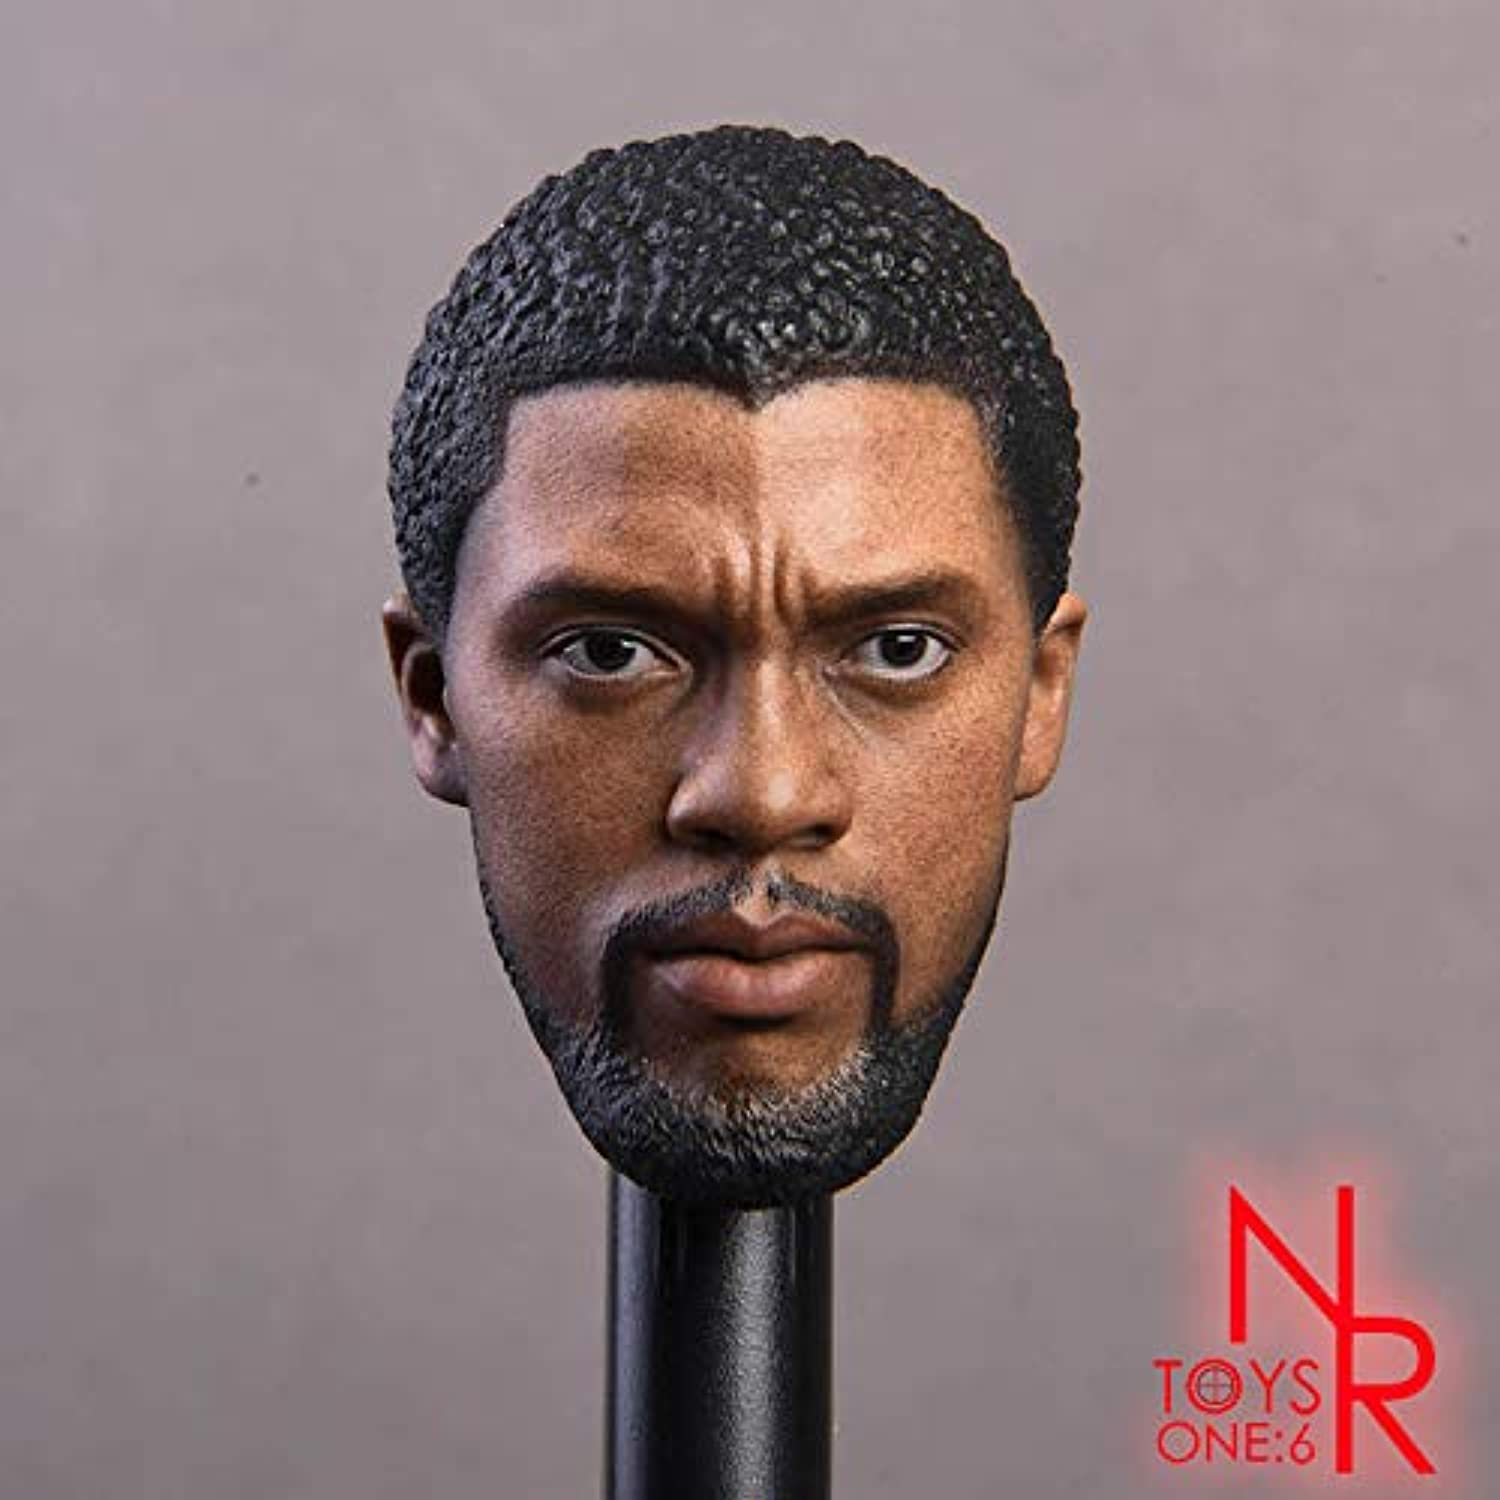 NRTOYS 1 6 Scale Figures Accessory Black Panther Head NR15 Model Toys